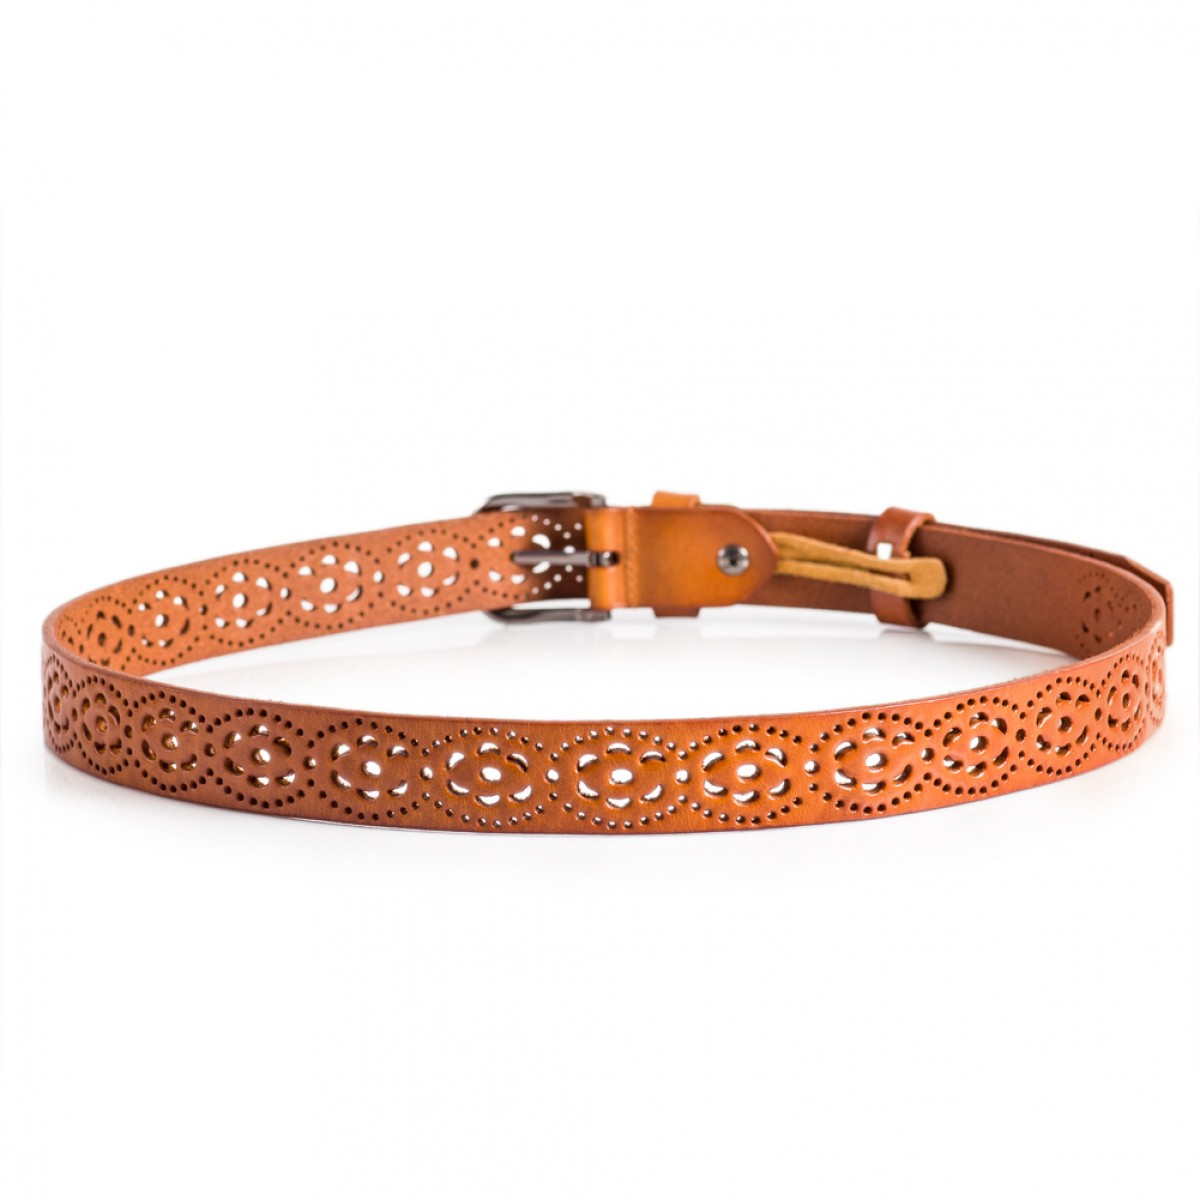 Floral Cut Out Leather Belt For Ladies Orange Sizes 28